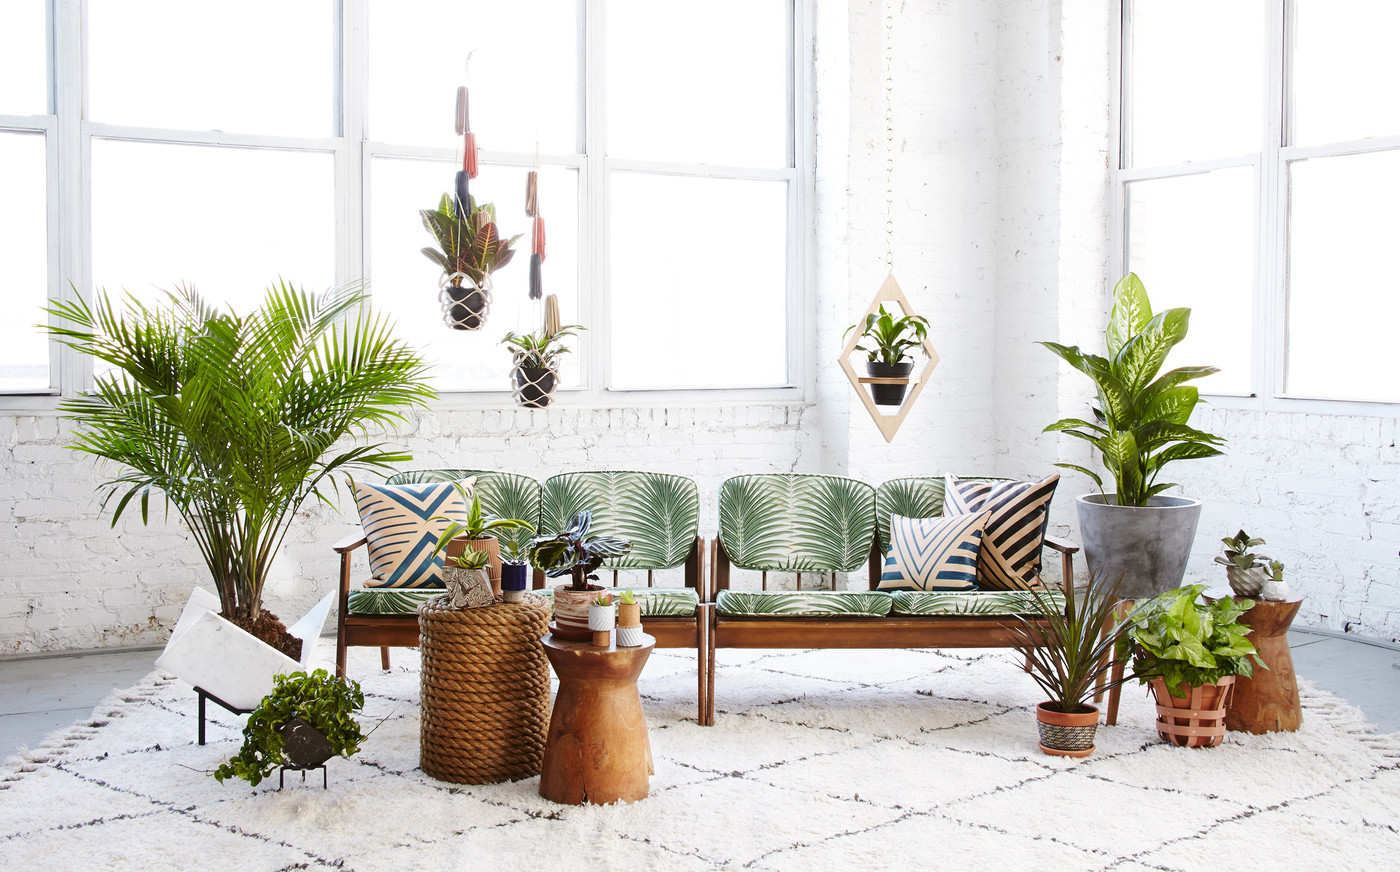 Eclectic Patio Photos, Design, Ideas, Remodel, And Decor